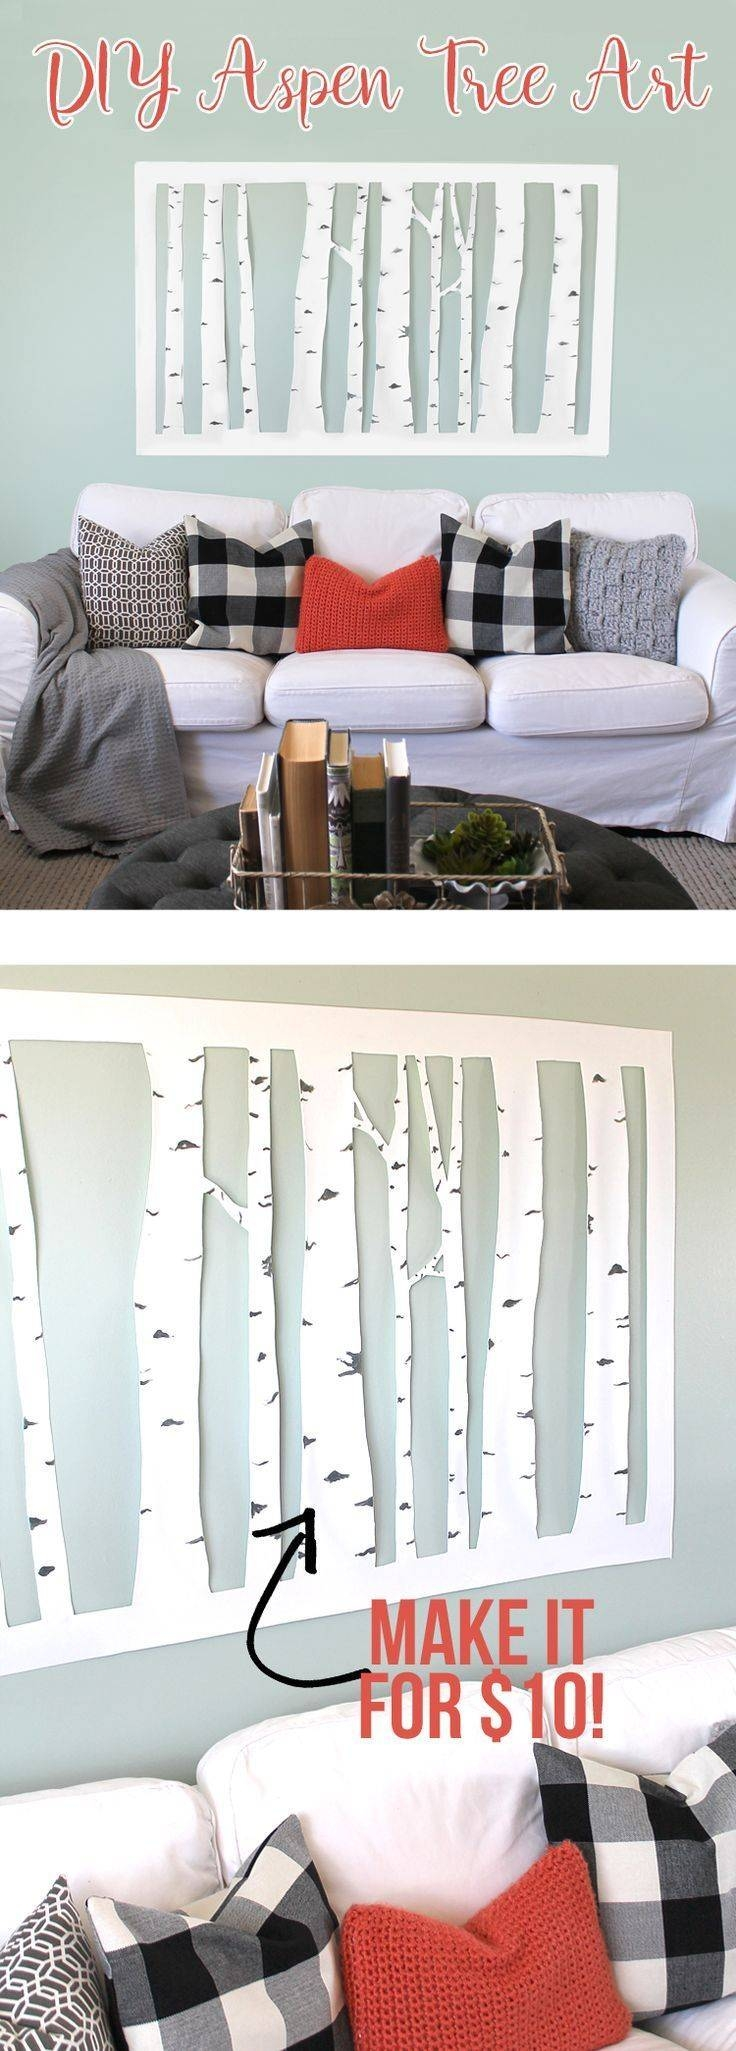 25+ Unique Cheap Wall Art Ideas On Pinterest | Easy Wall Art Pertaining To Best And Newest Large Inexpensive Wall Art (View 10 of 20)